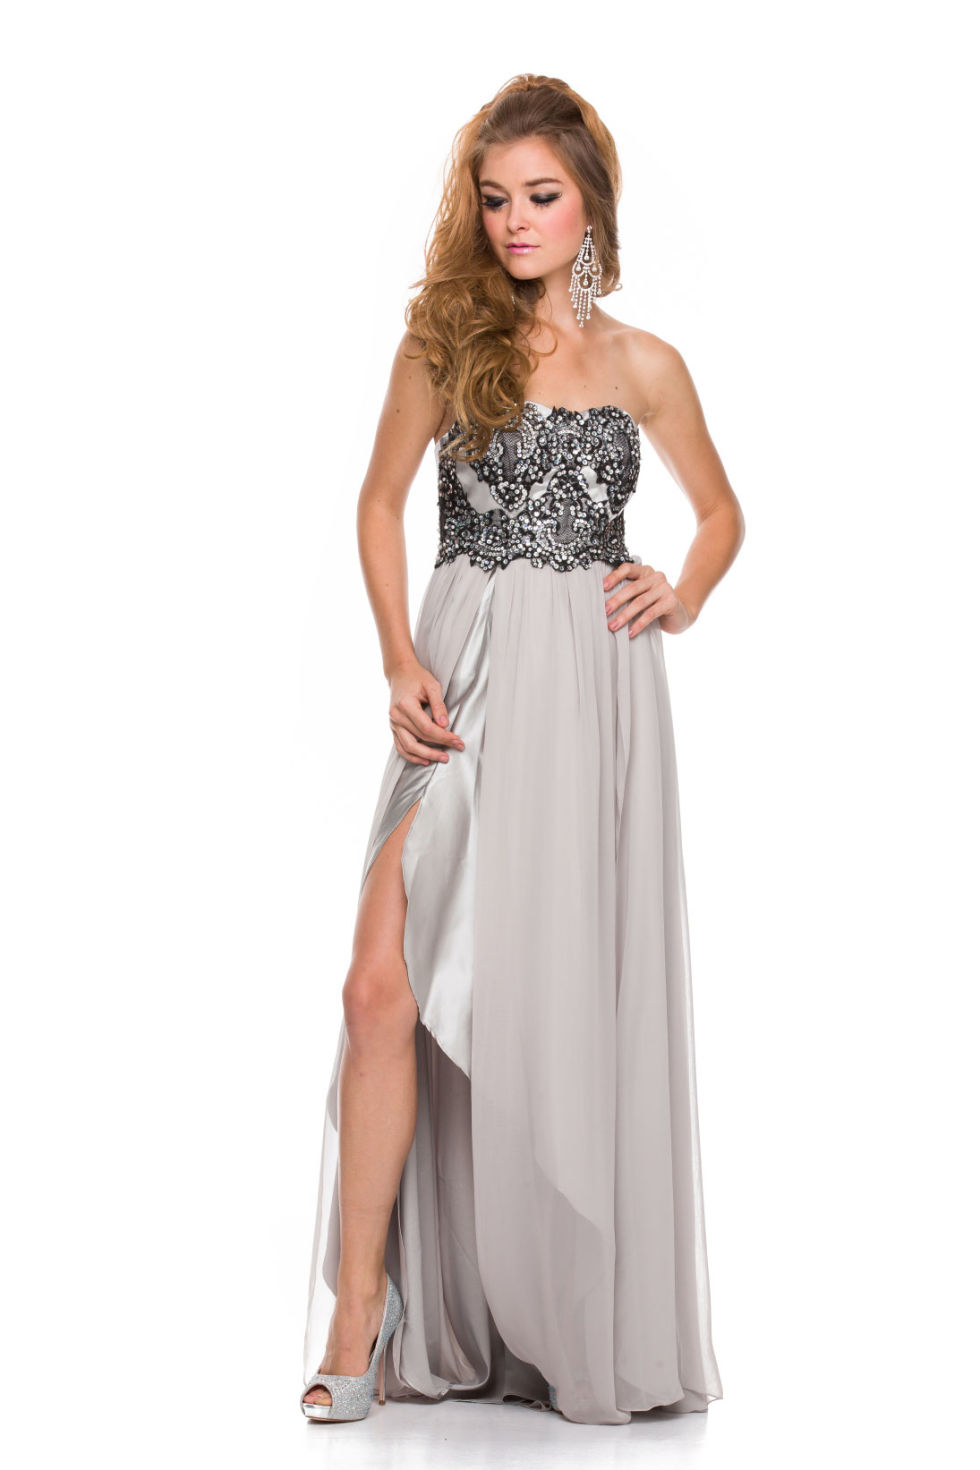 Strapless Banquet Dresses | Dress images